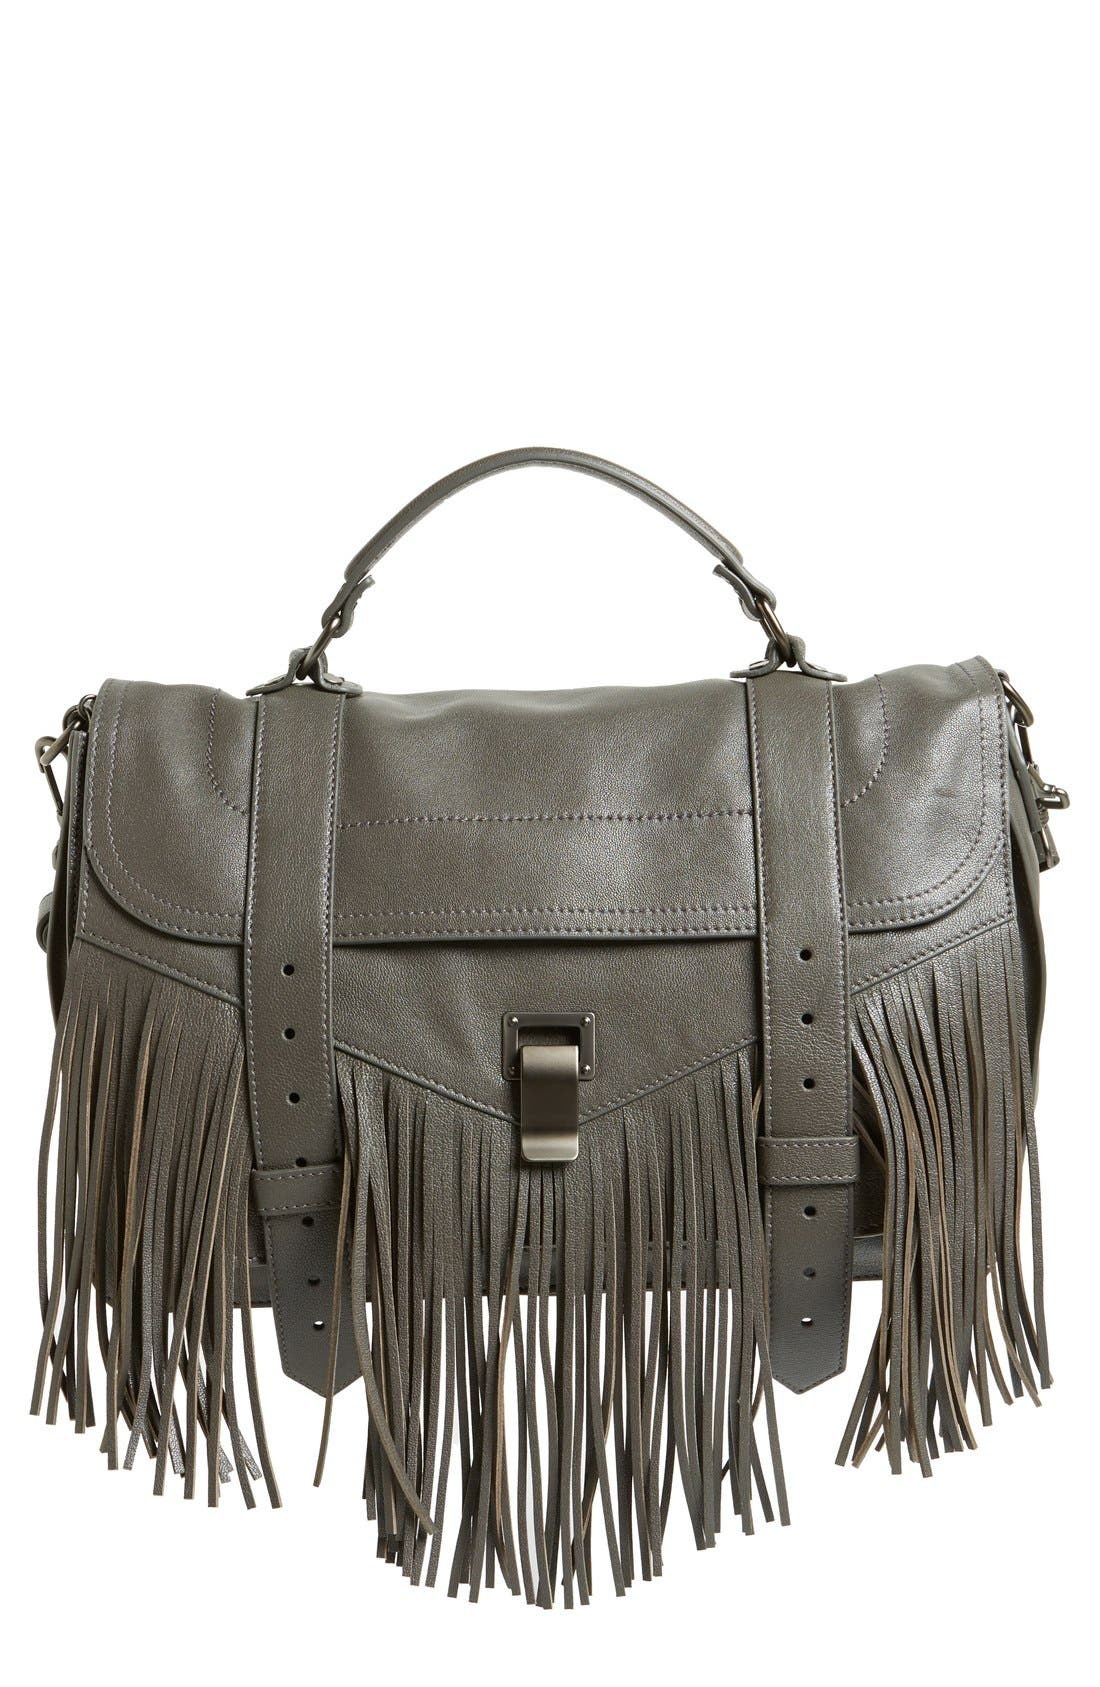 Main Image - Proenza Schouler 'Medium PS1' Fringed Leather Satchel